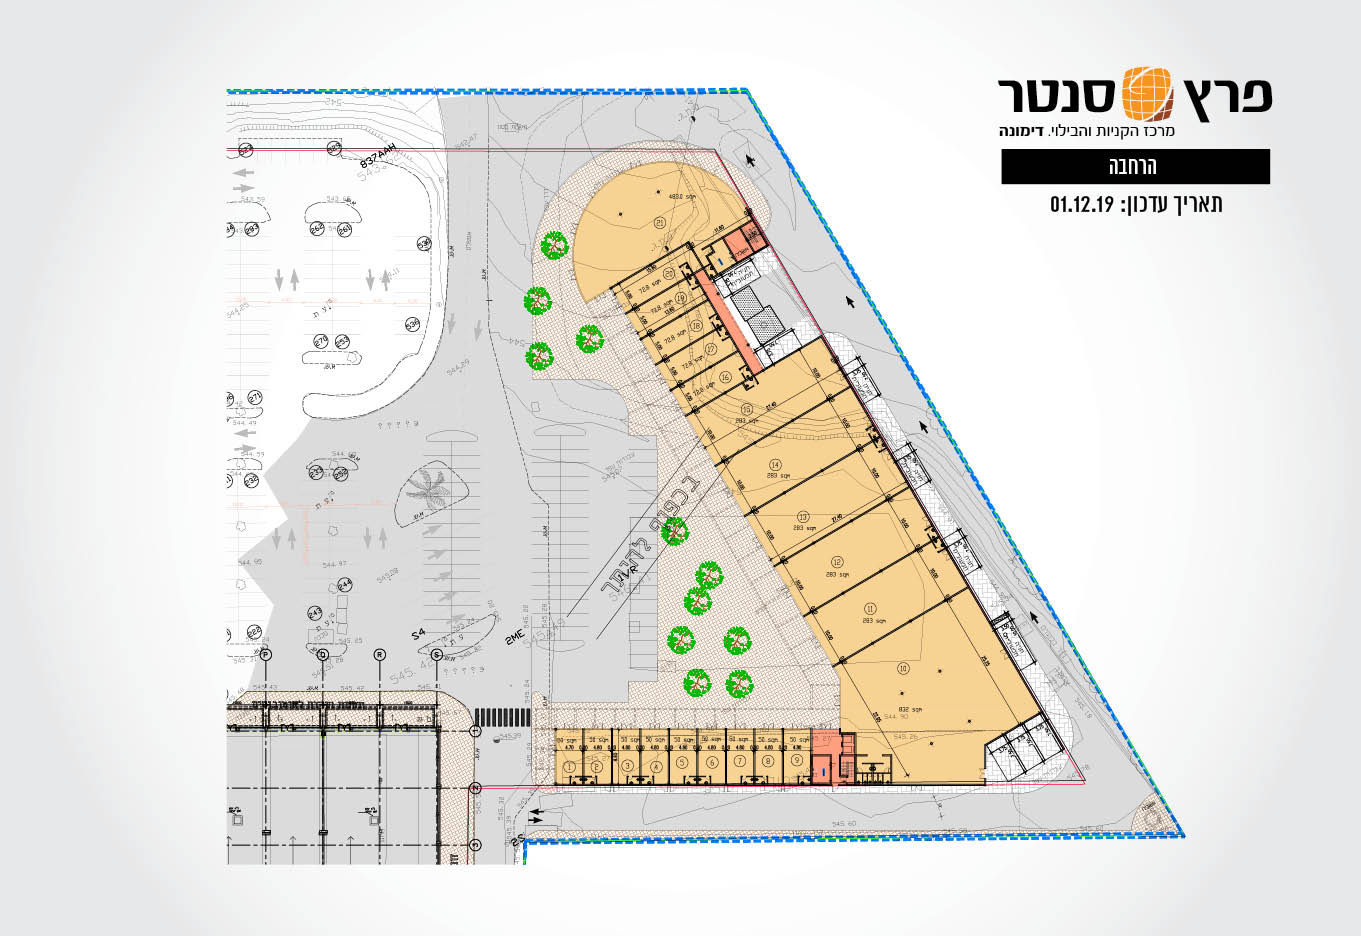 Peretz Center Dimaona Tasrit 32